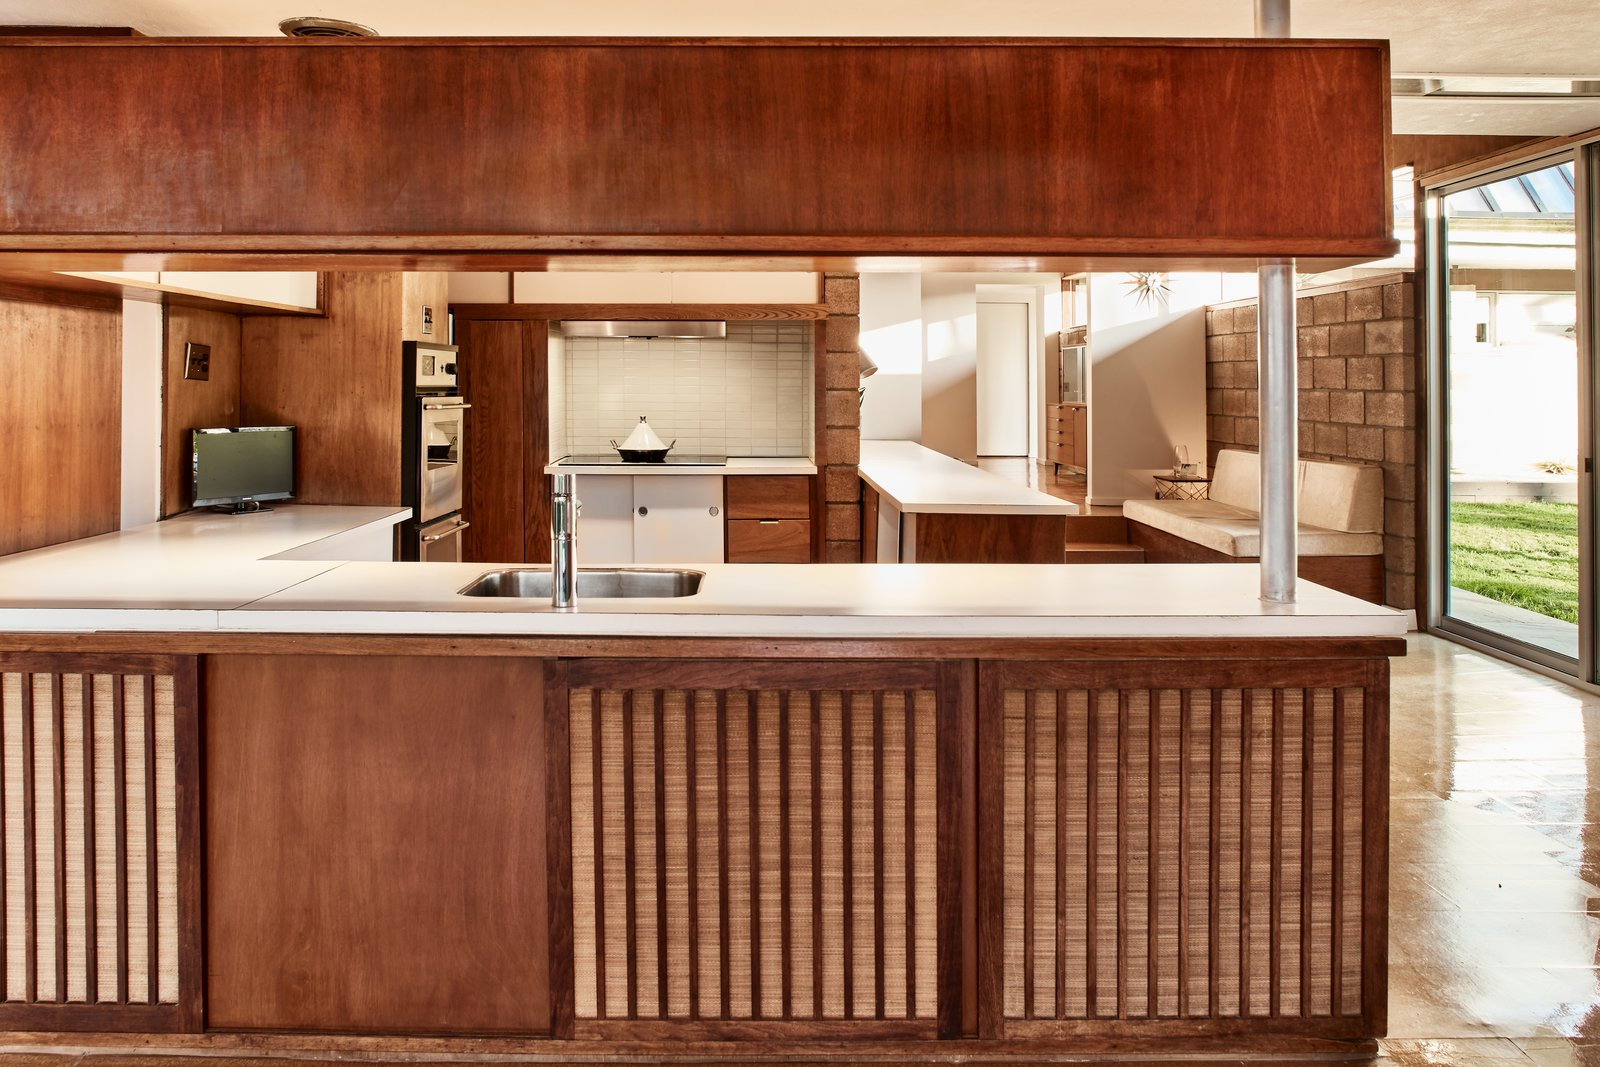 Tagged: Kitchen and Wood Cabinet.  Photo 6 of 13 in The Stunningly Restored Hassrick Residence by Richard Neutra Hits the Market at $2.2M